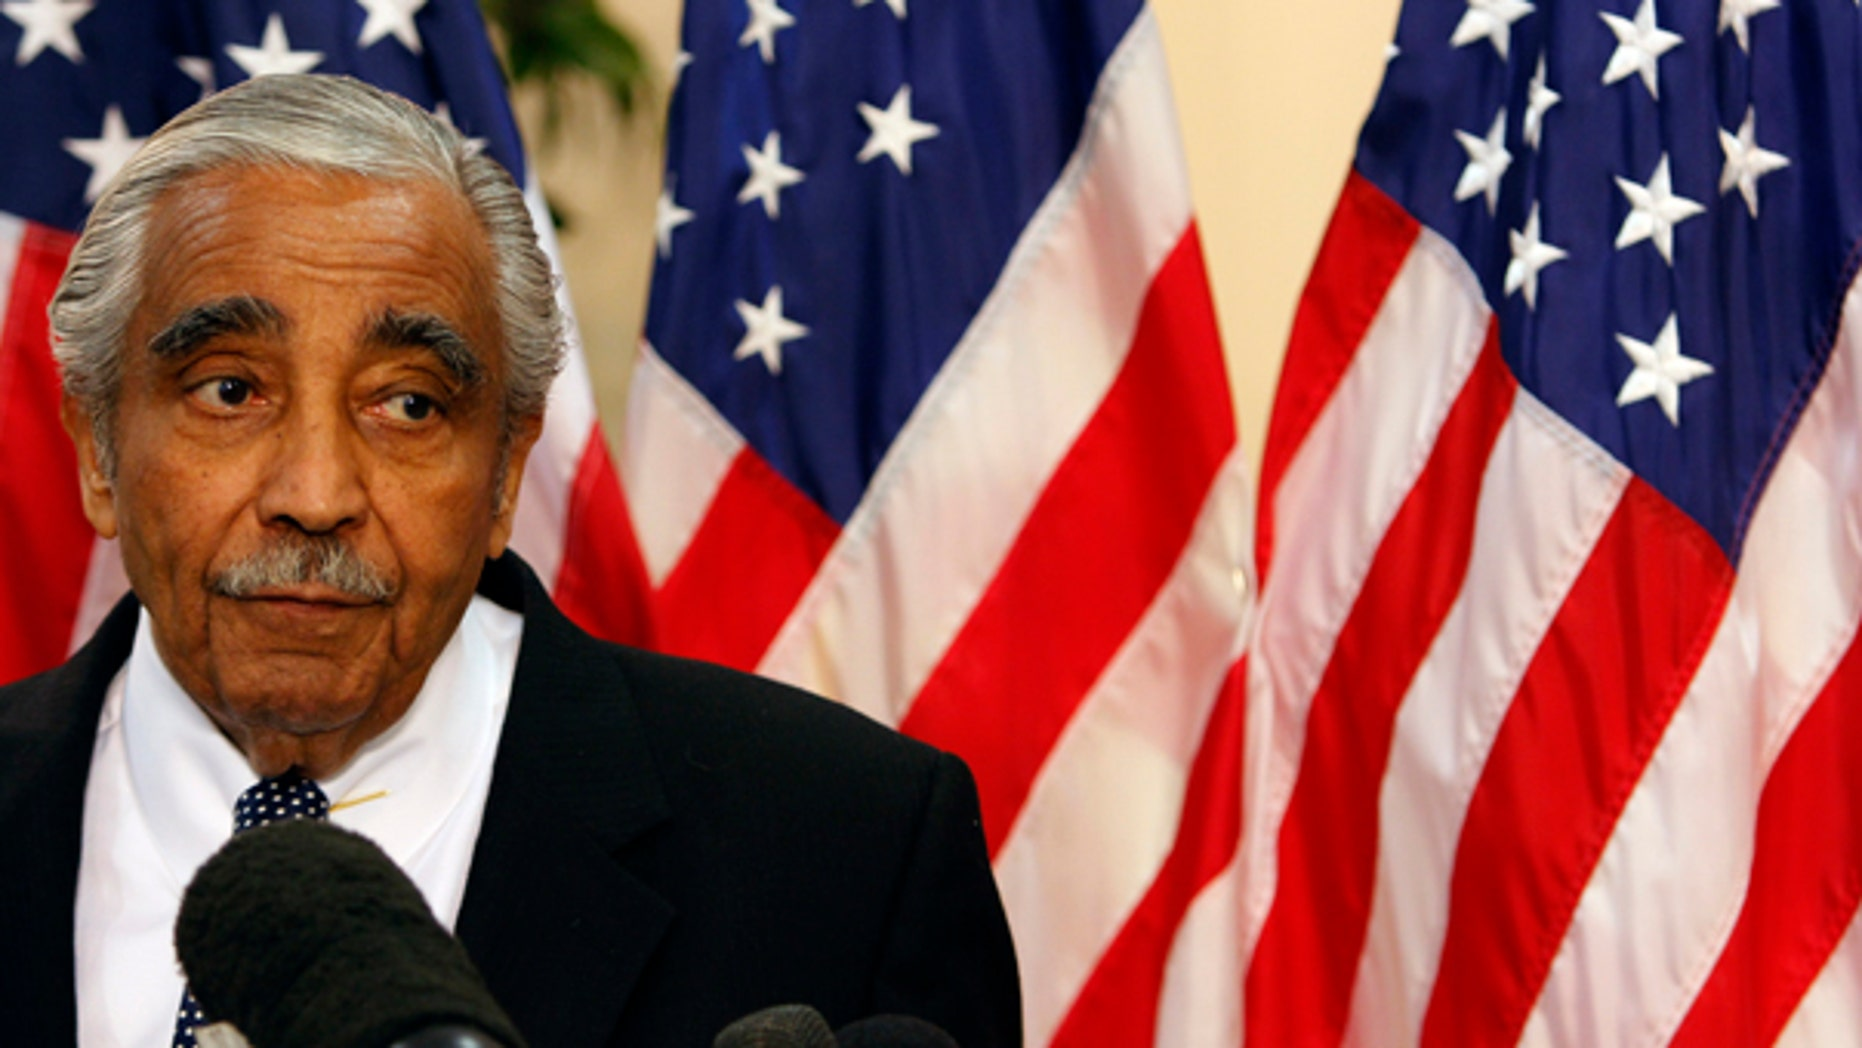 July 23: Democratic Rep. Charles Rangel speaks to reporters during a news conference in New York. Rangel, once among the most powerful members of Congress, will face a hearing on charges of violating House ethics rules.